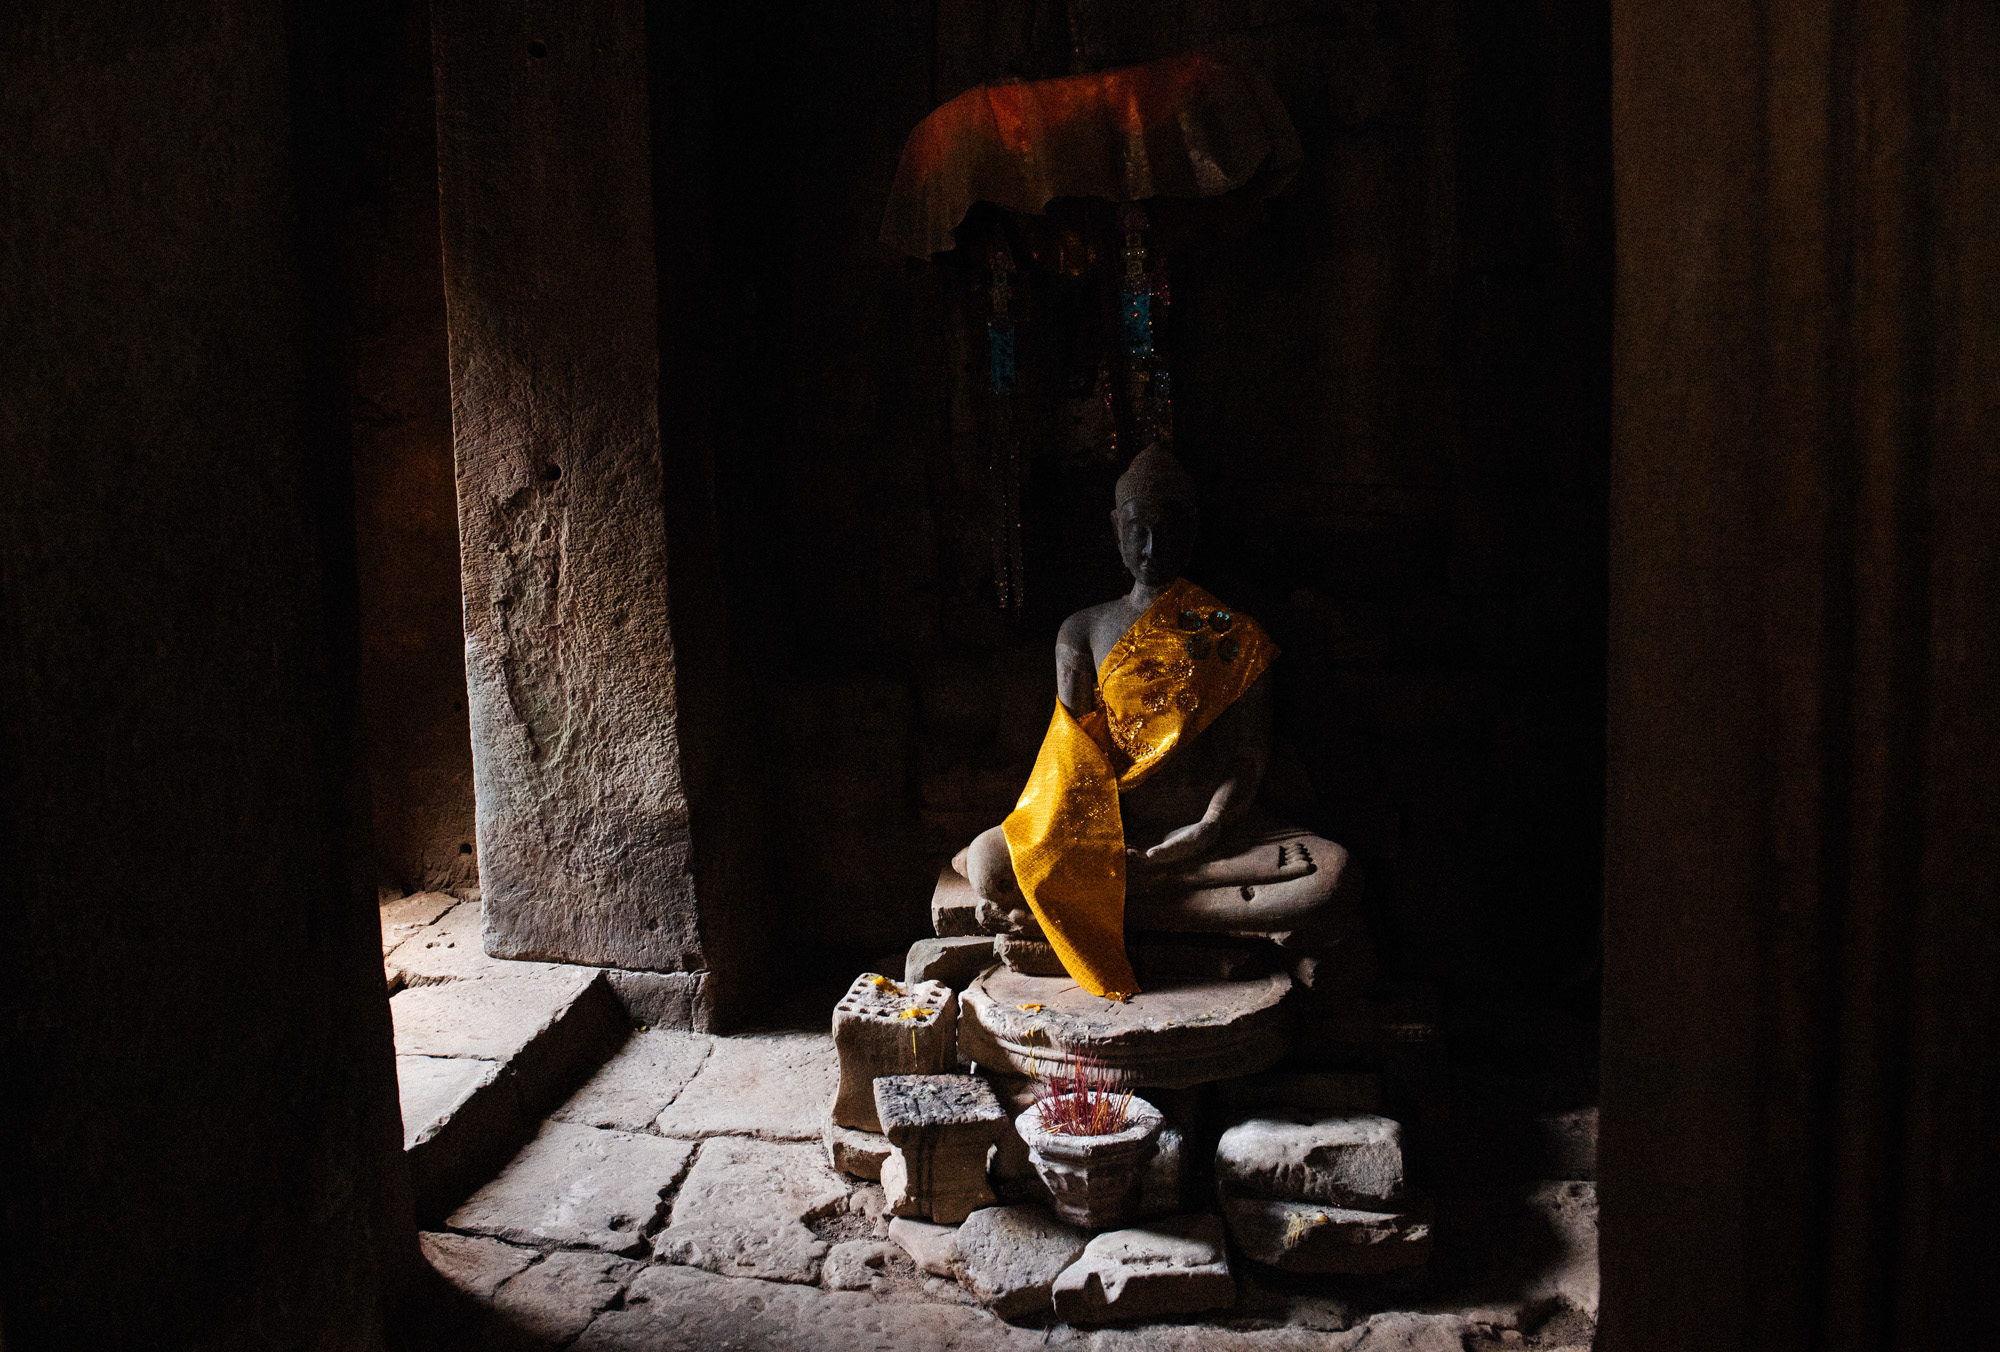 A statue of Buddha sits in a dark corner with several sticks of incense burning at its feet.